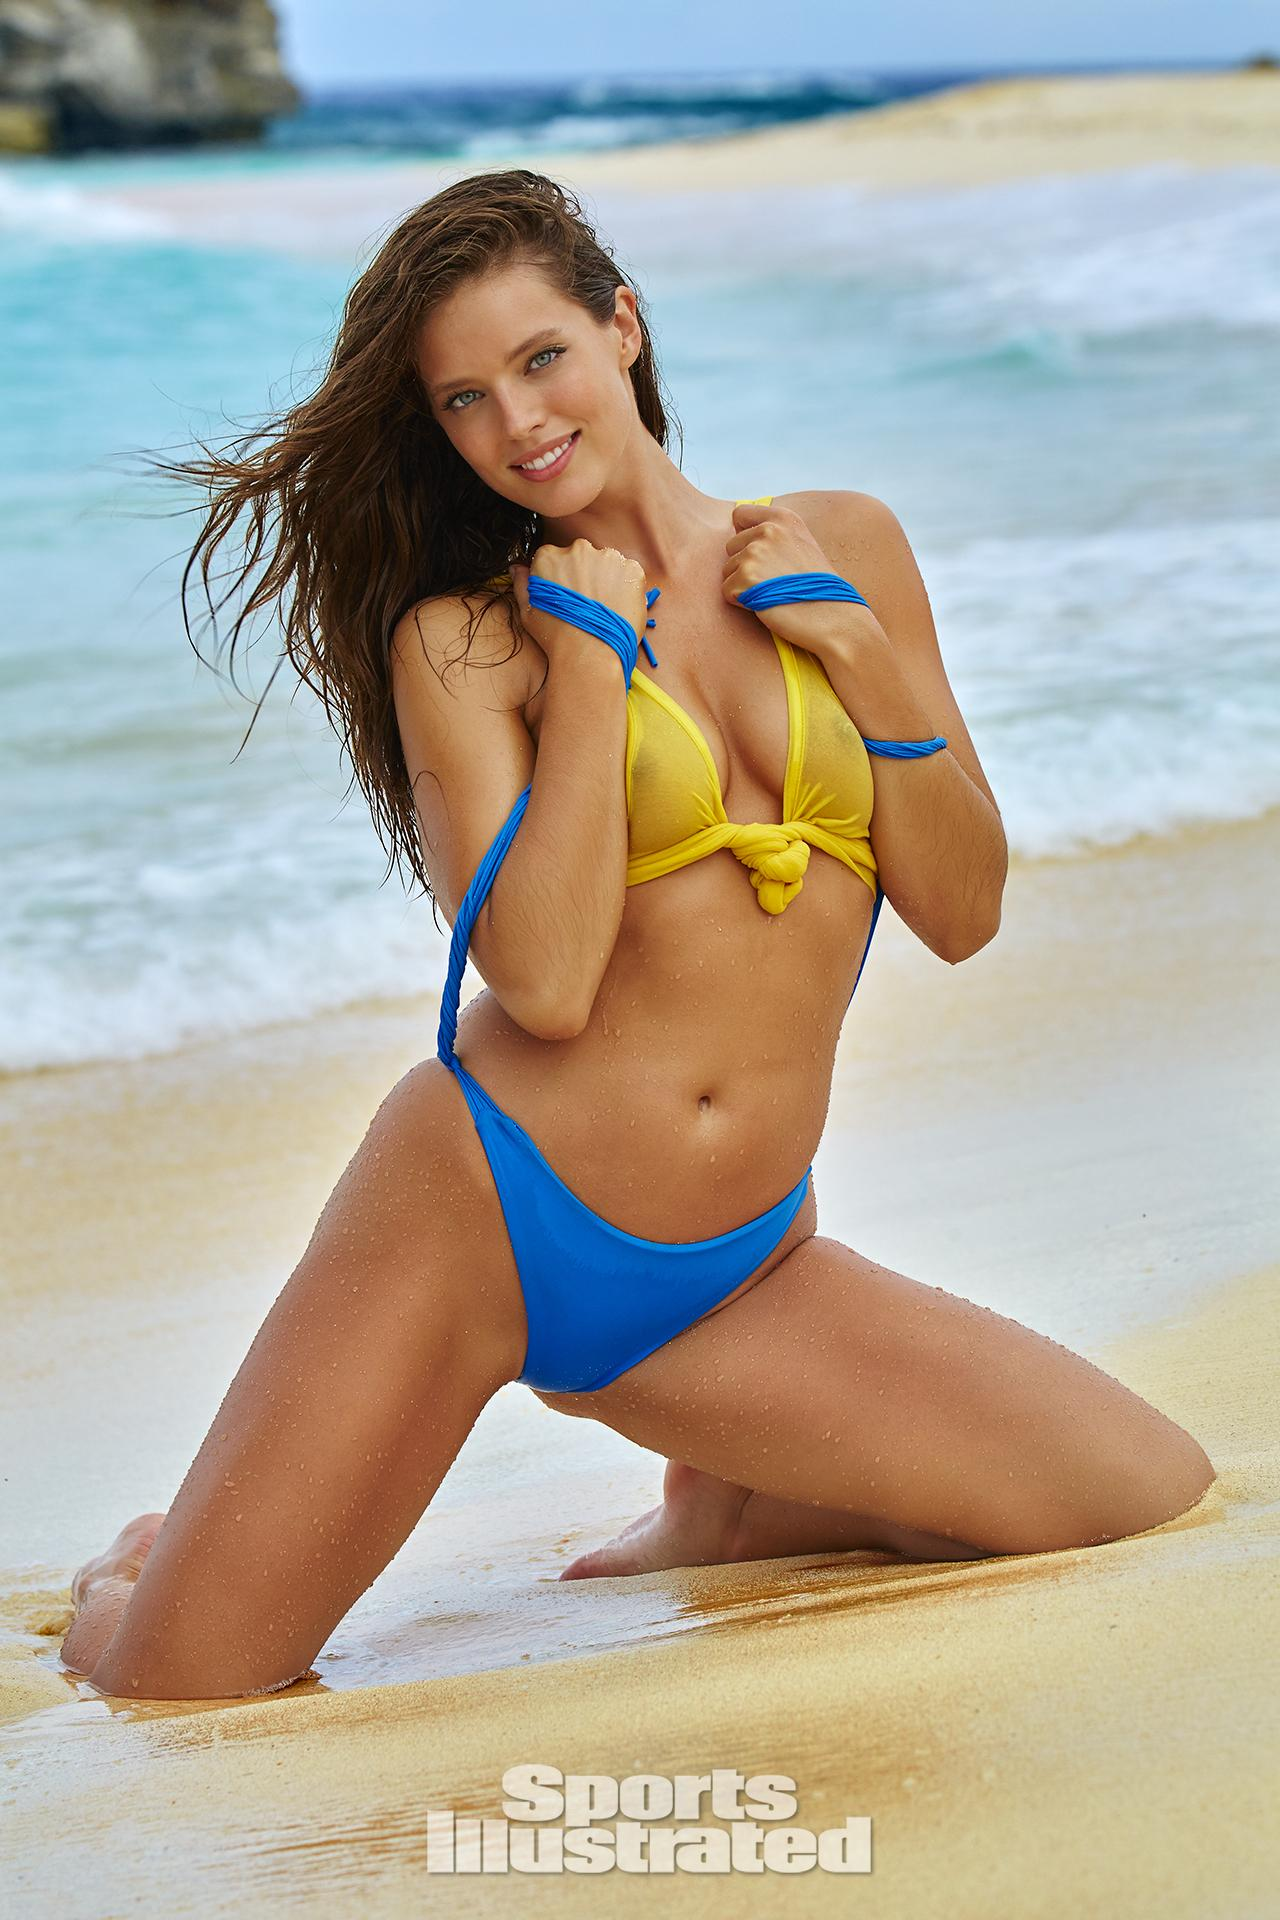 Emily DiDonato Swimsuit Photos, Sports Illustrated Swimsuit 2016